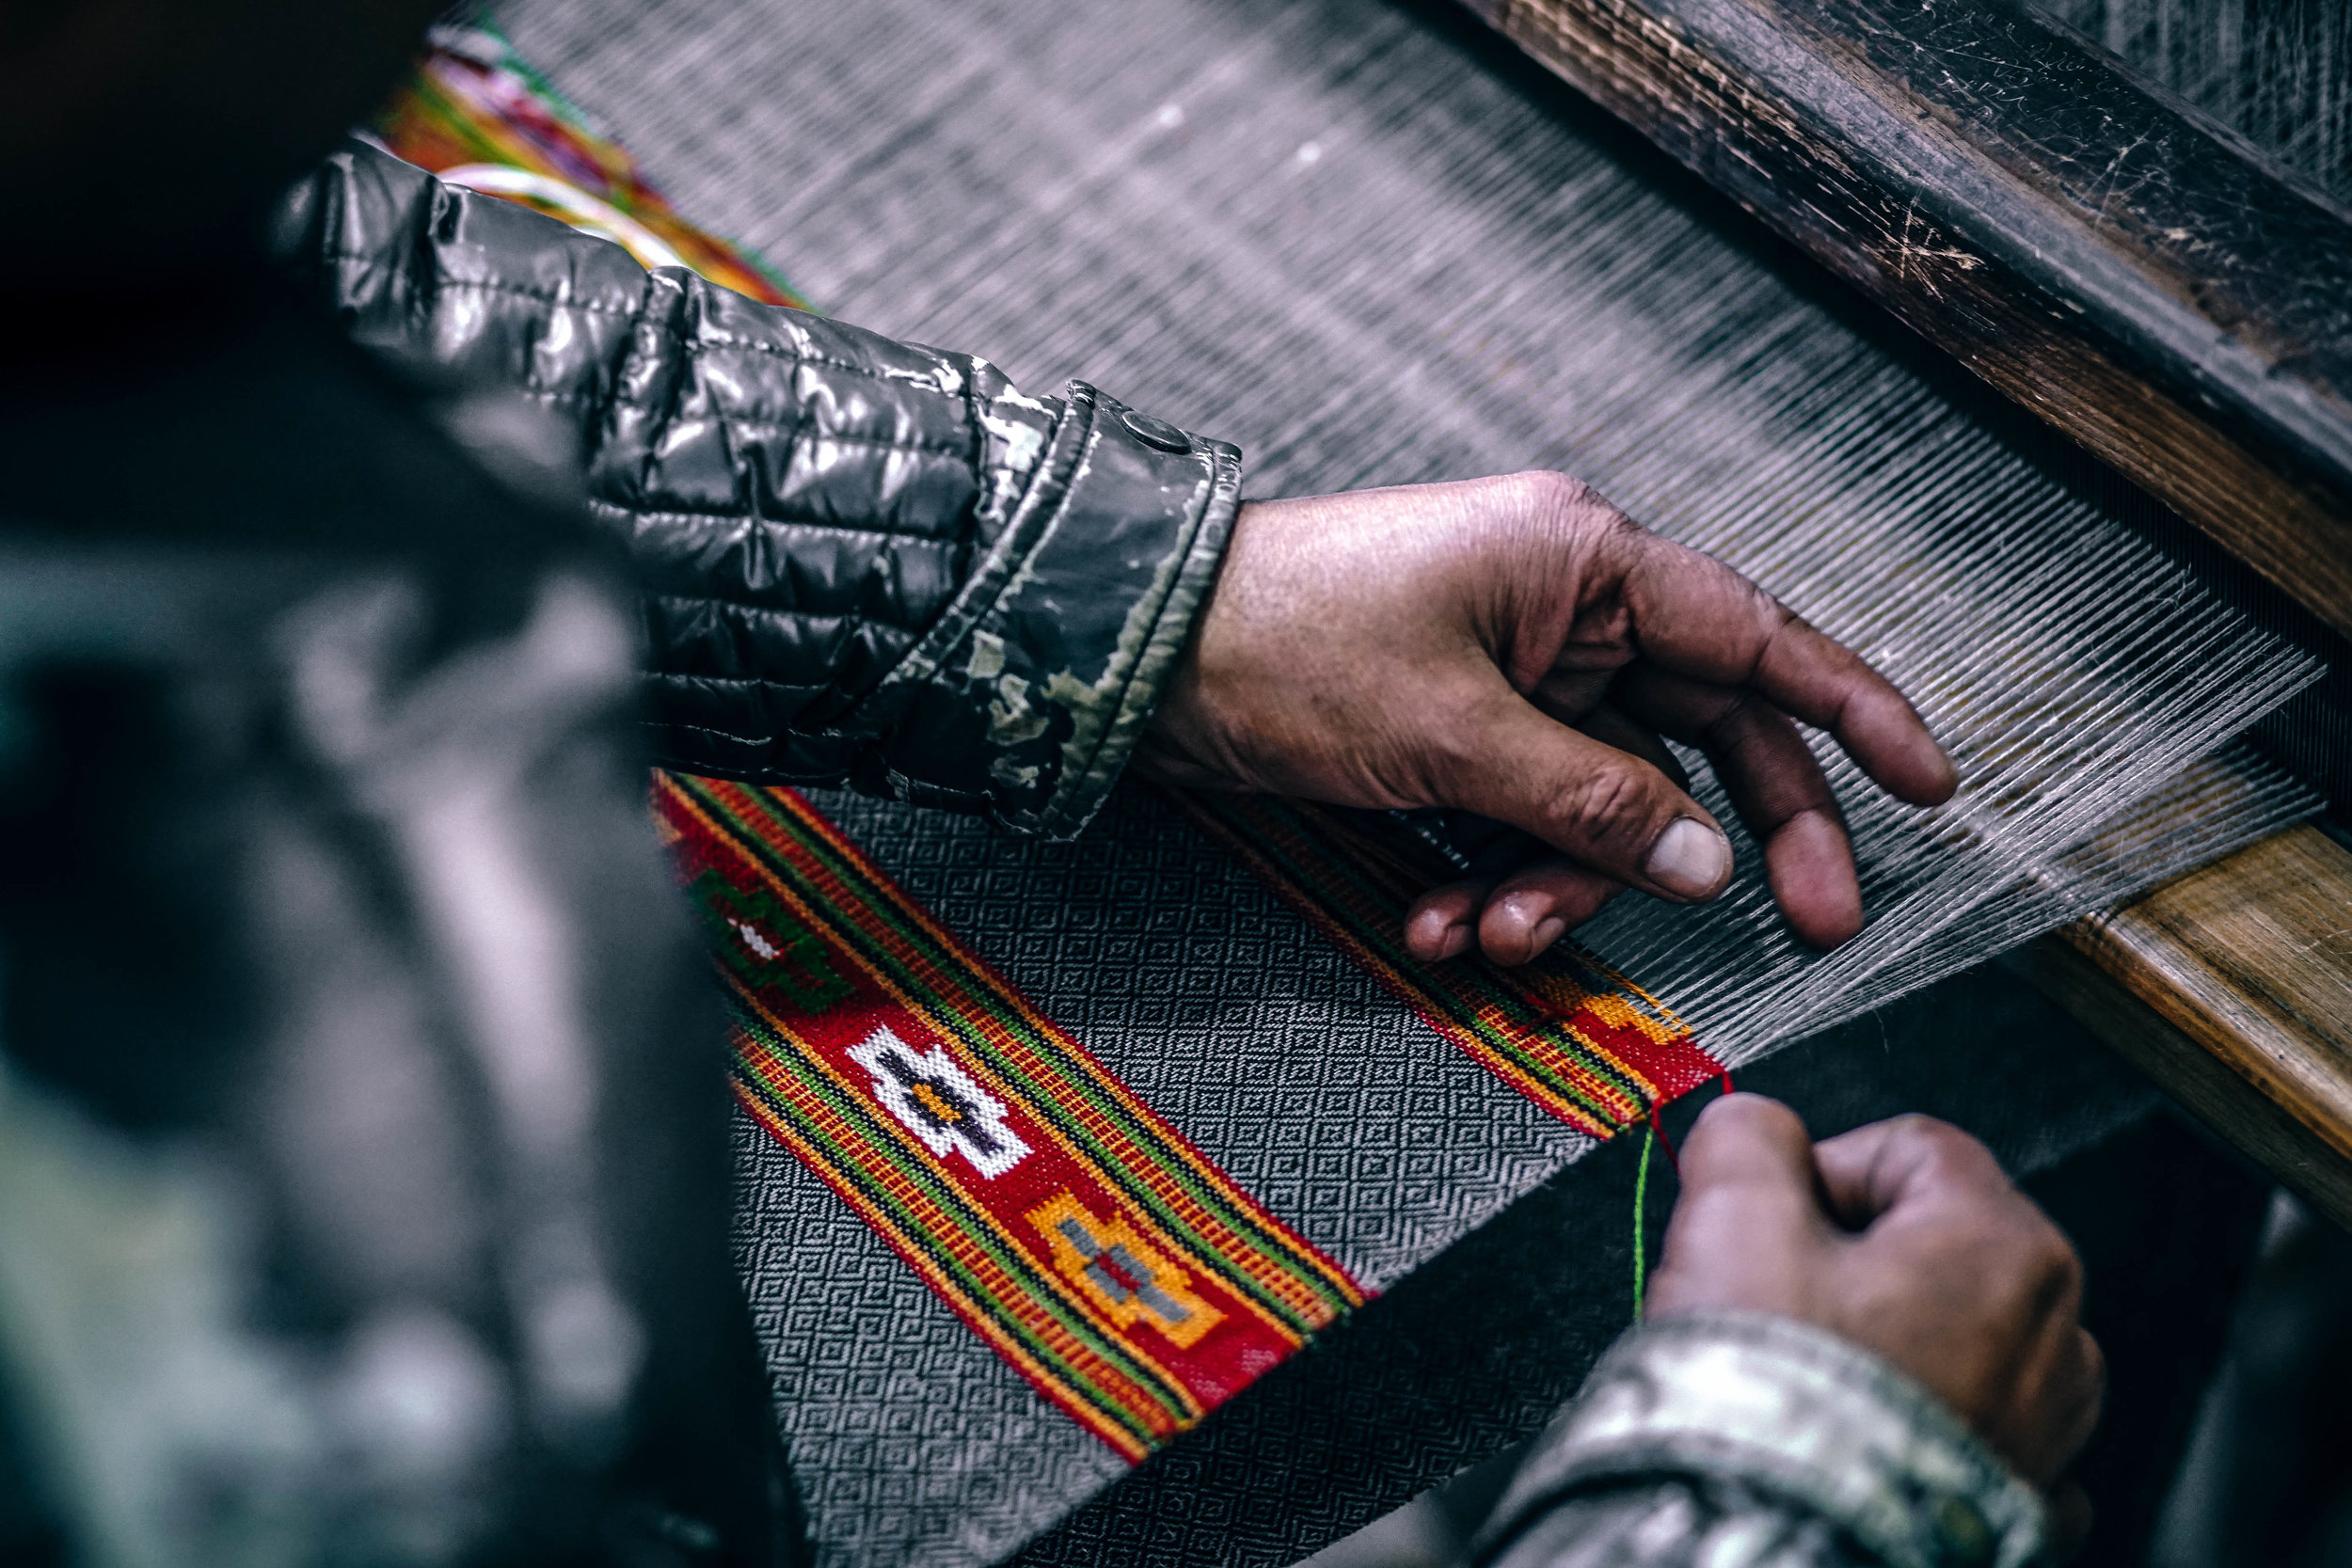 Manufacturing fabric for fashion design